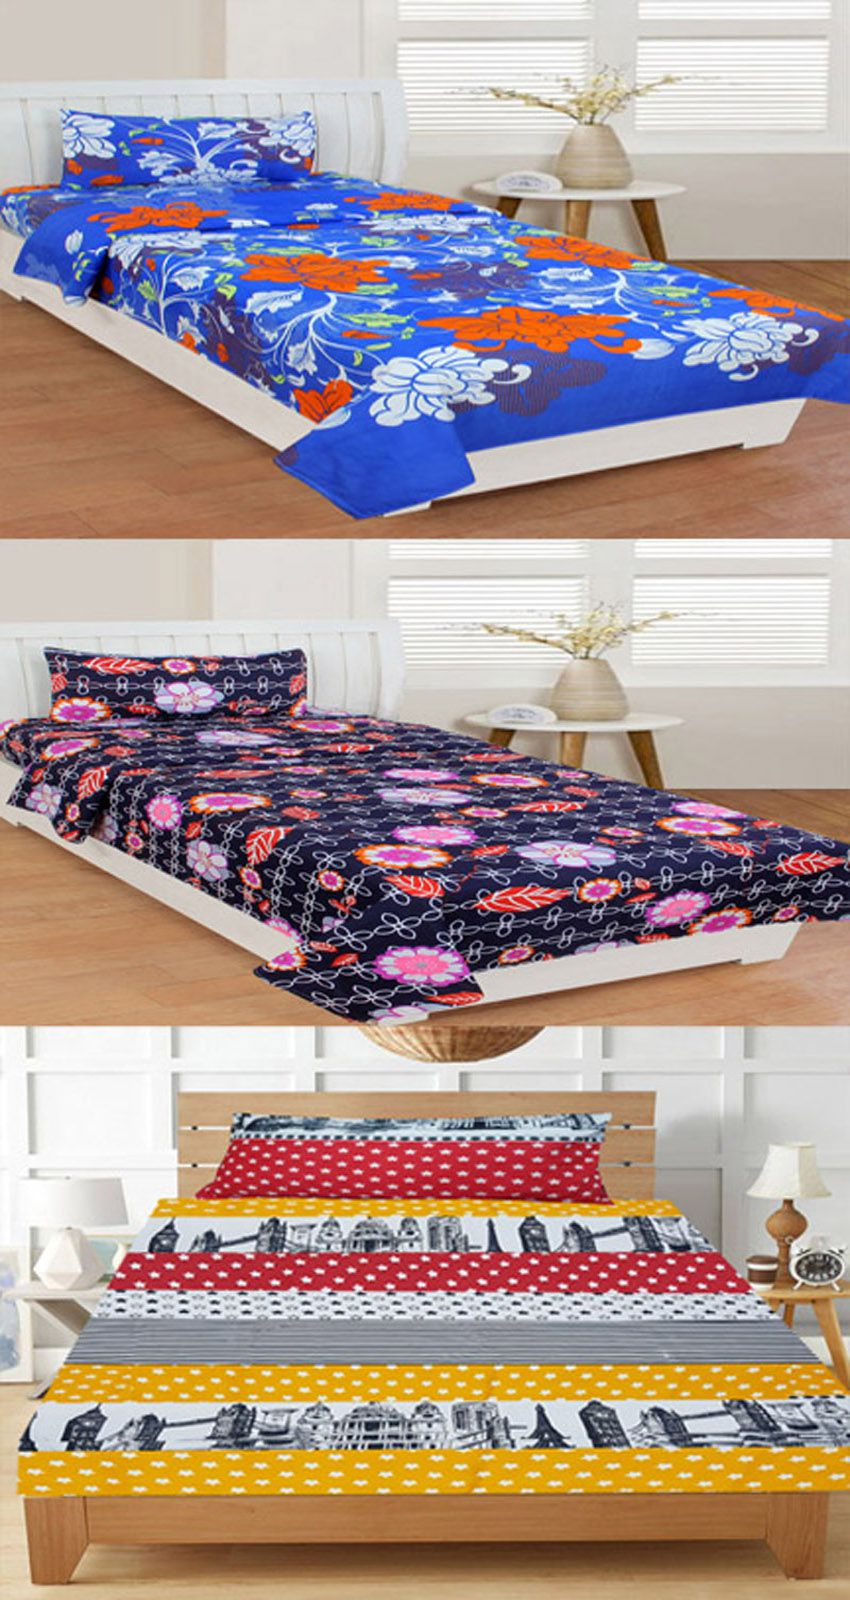 DINNY Poly Cotton 3 Single Bedsheets with 3 Pillow Covers